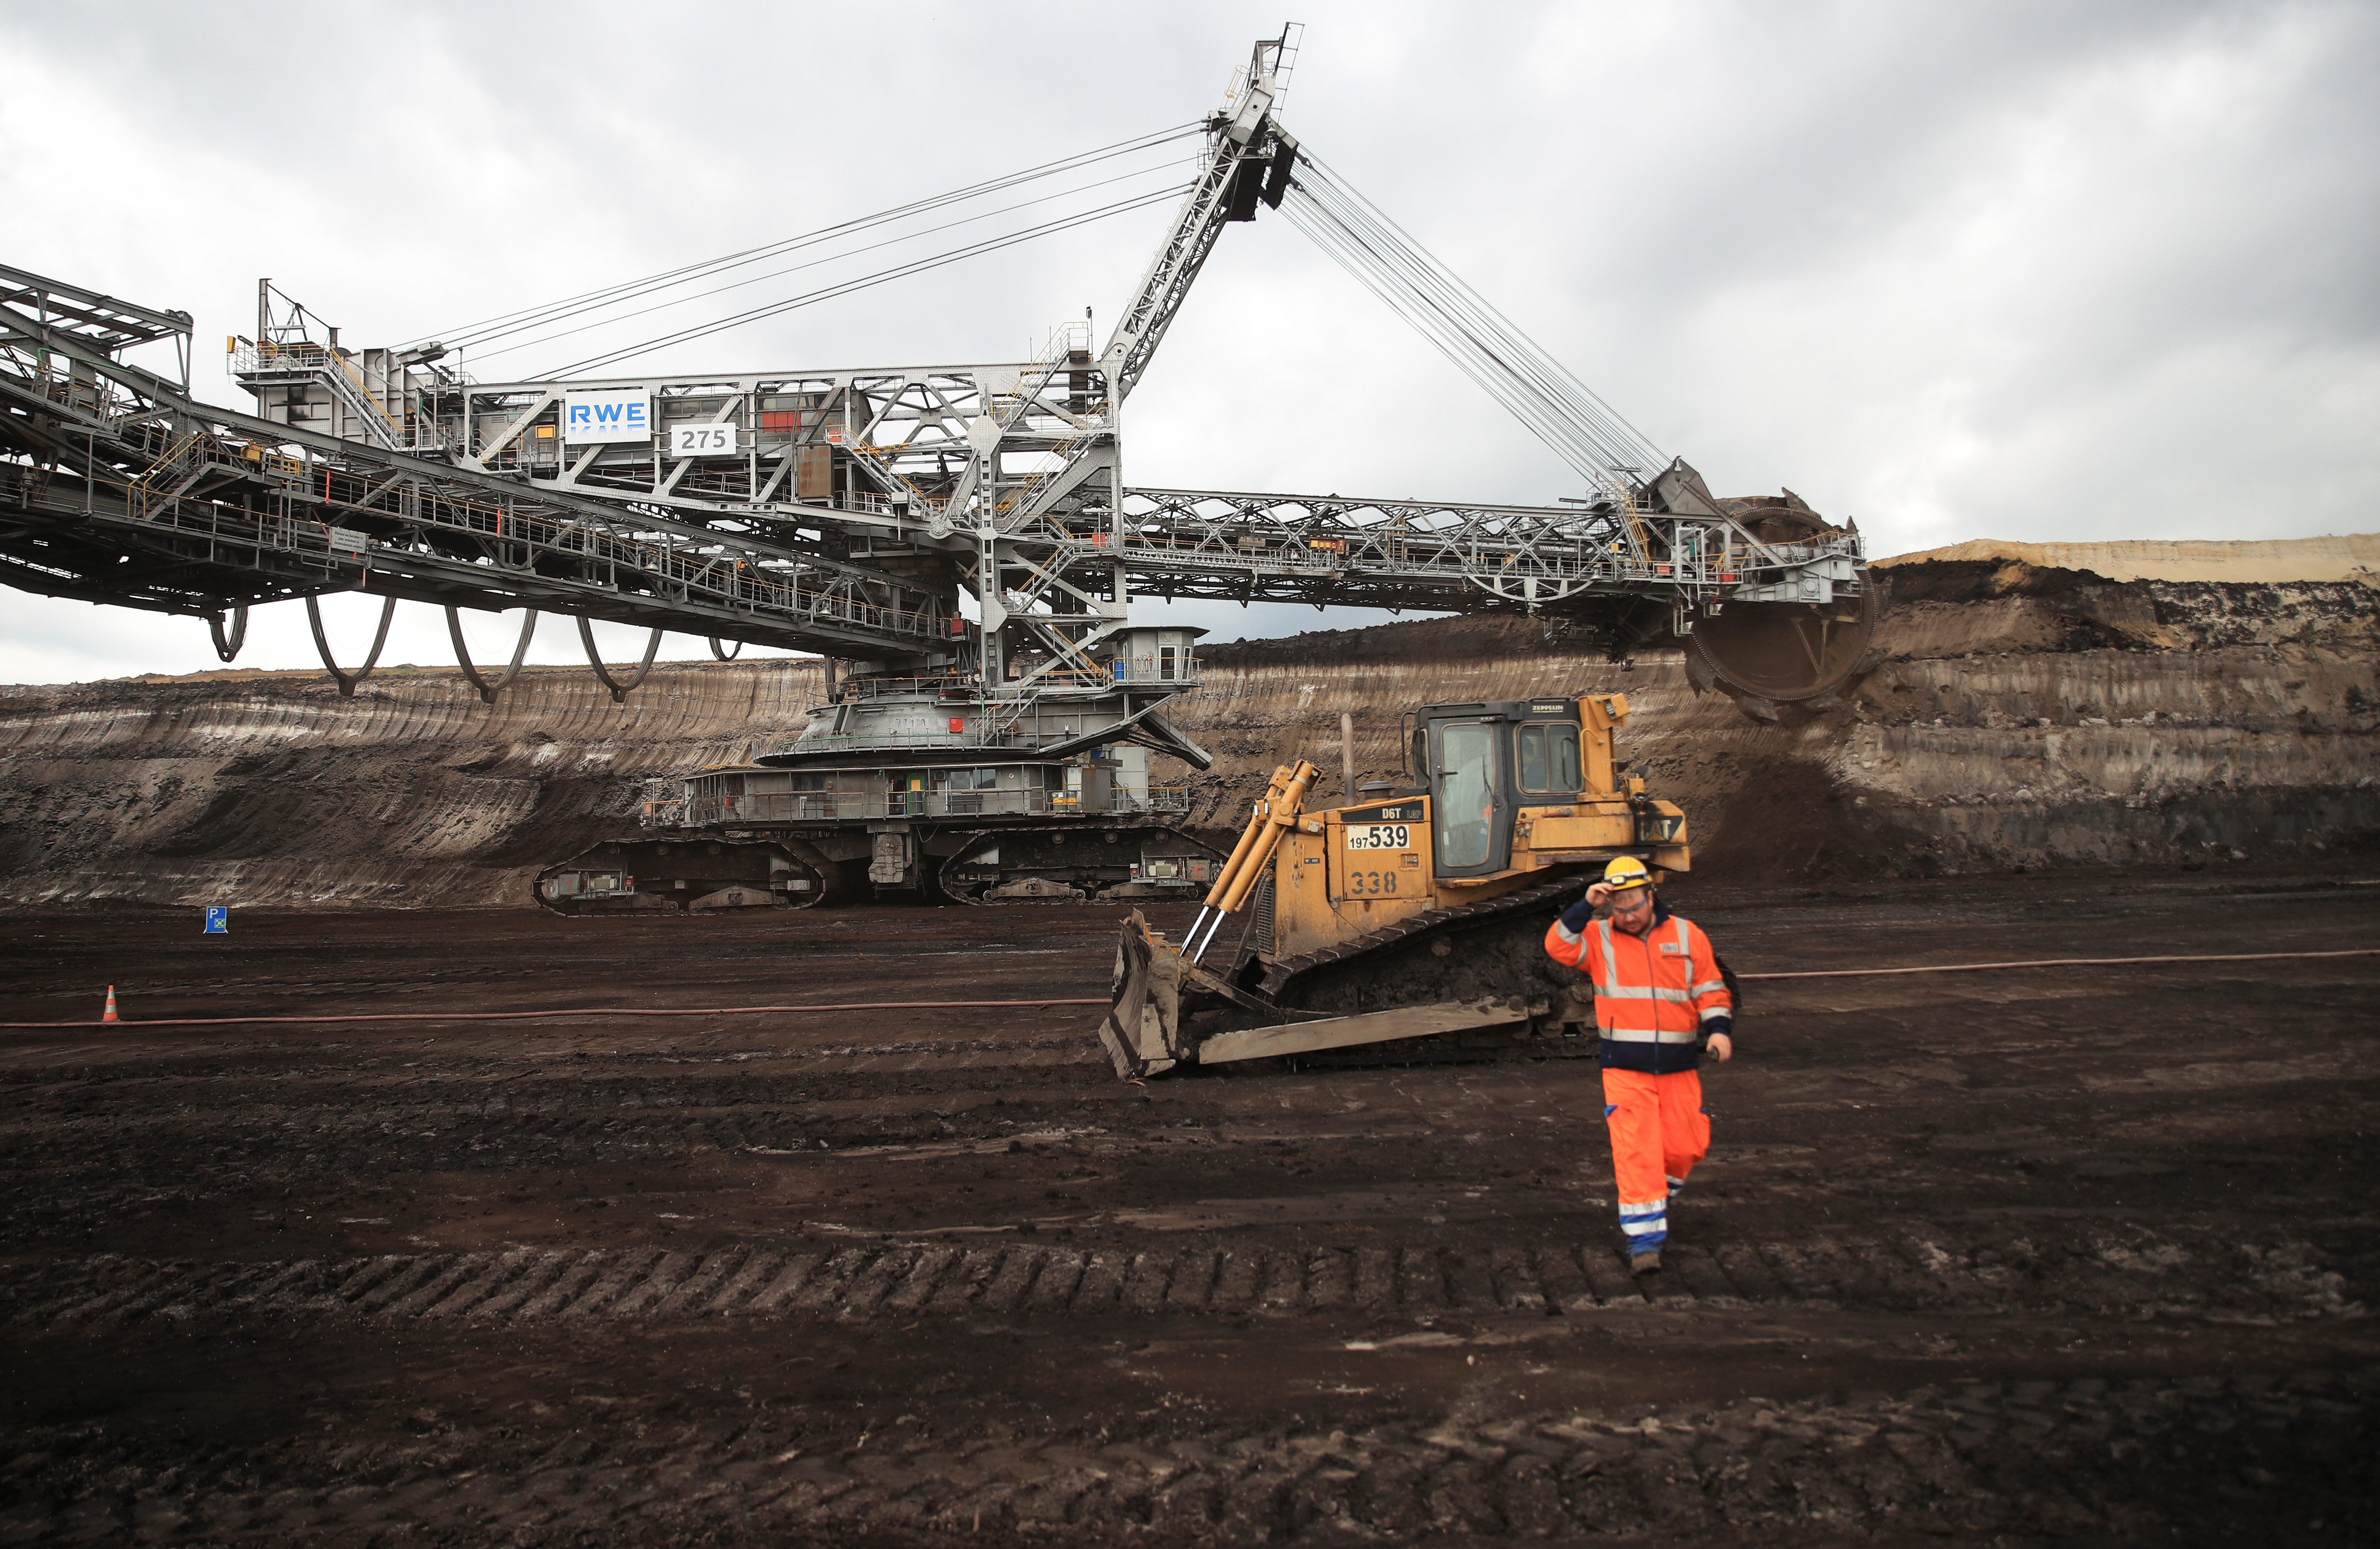 An operator of RWE's huge bucket wheel excavator lifts his helmet while the paddle-wheel digs for lignite in the open-cast brown coal mine of Inden near Weisweiler after an Internet auction ended to sell the 3,500 tons heavy excavator in Inden, Germany September 30, 2020